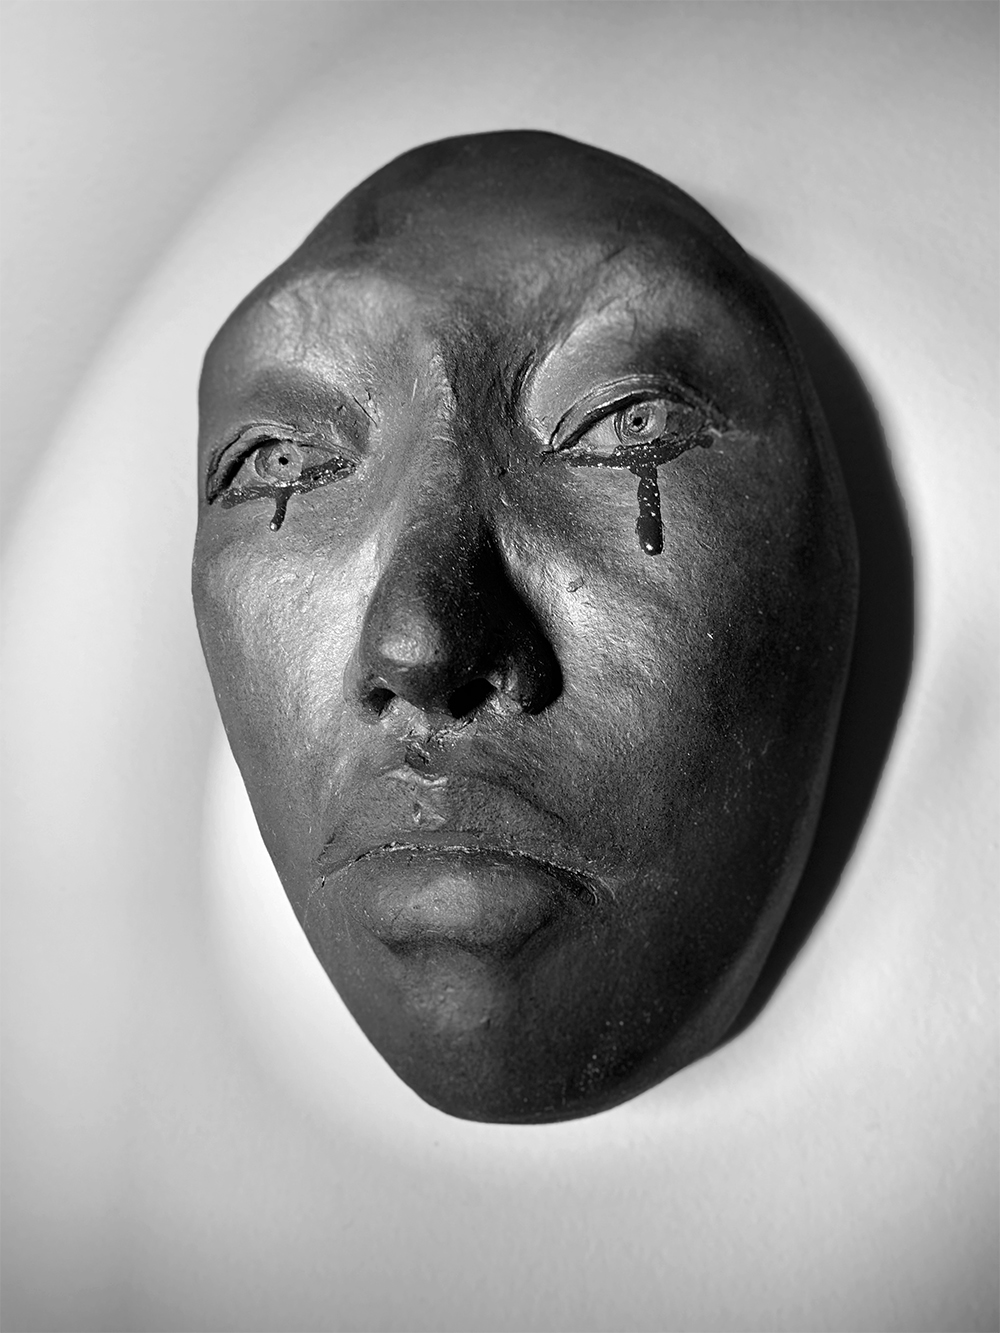 a black ceramic face mounted on a white wall, with a content facial expression and tears falling from open eyes with a closed mouth.